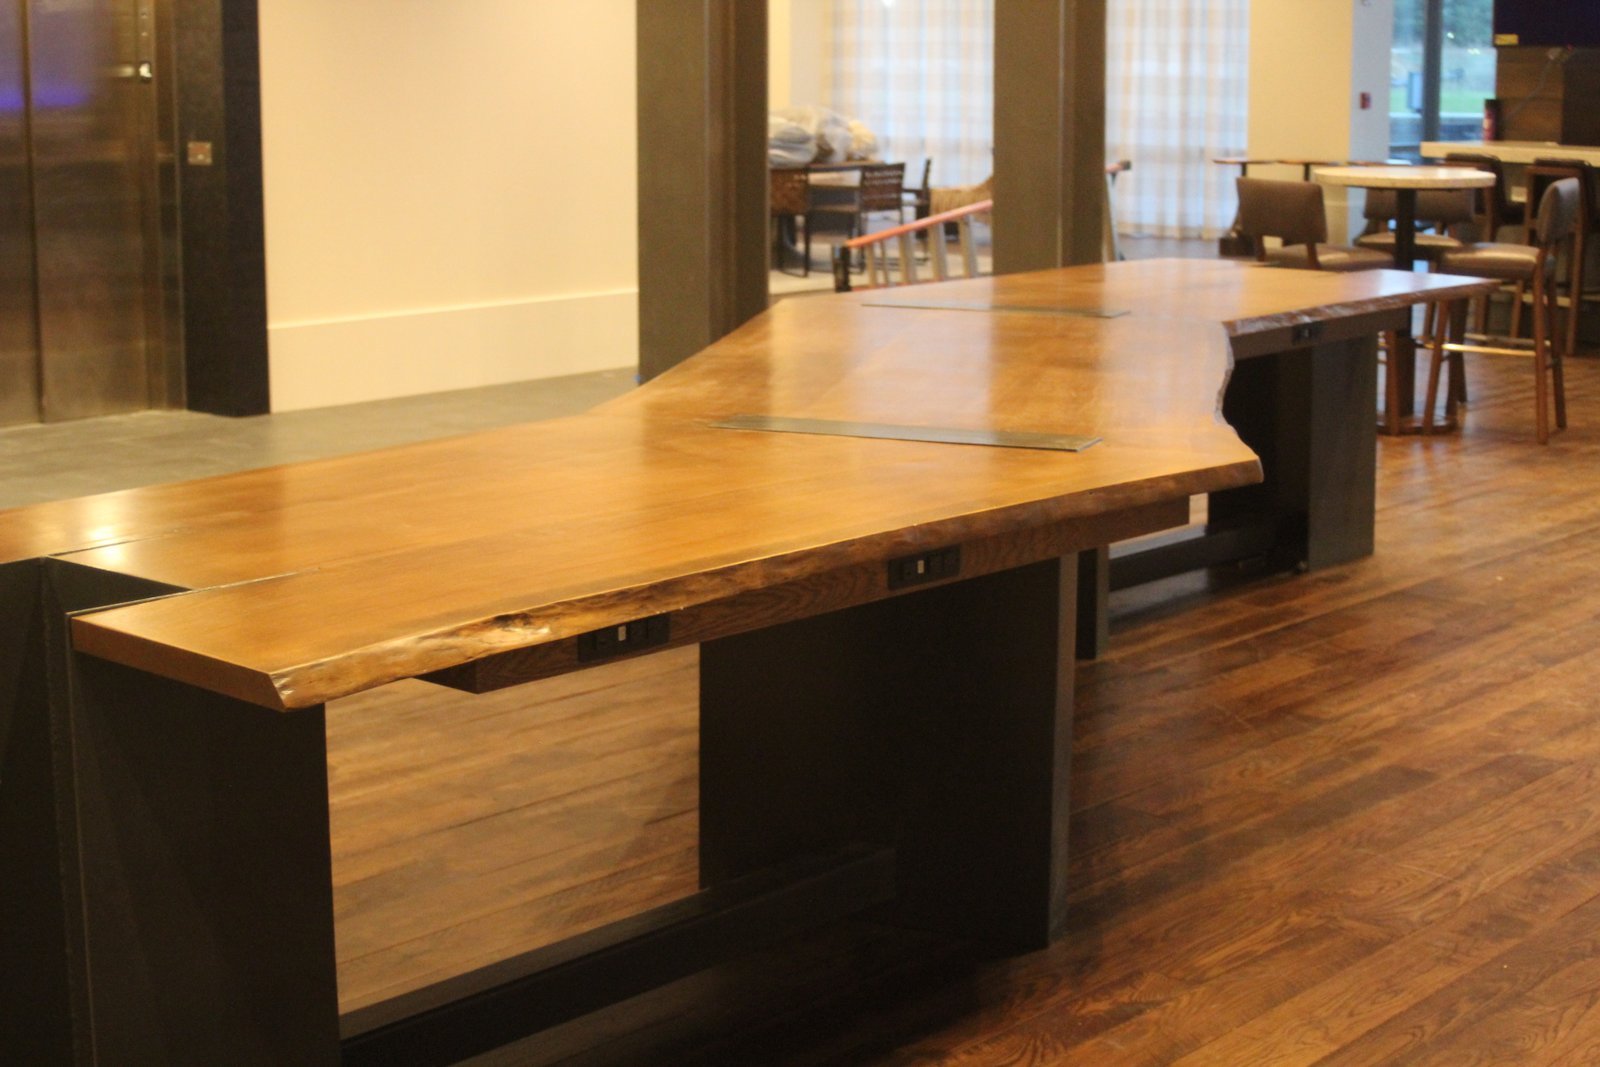 Live Edge and Steel communal Table with Technology Ports